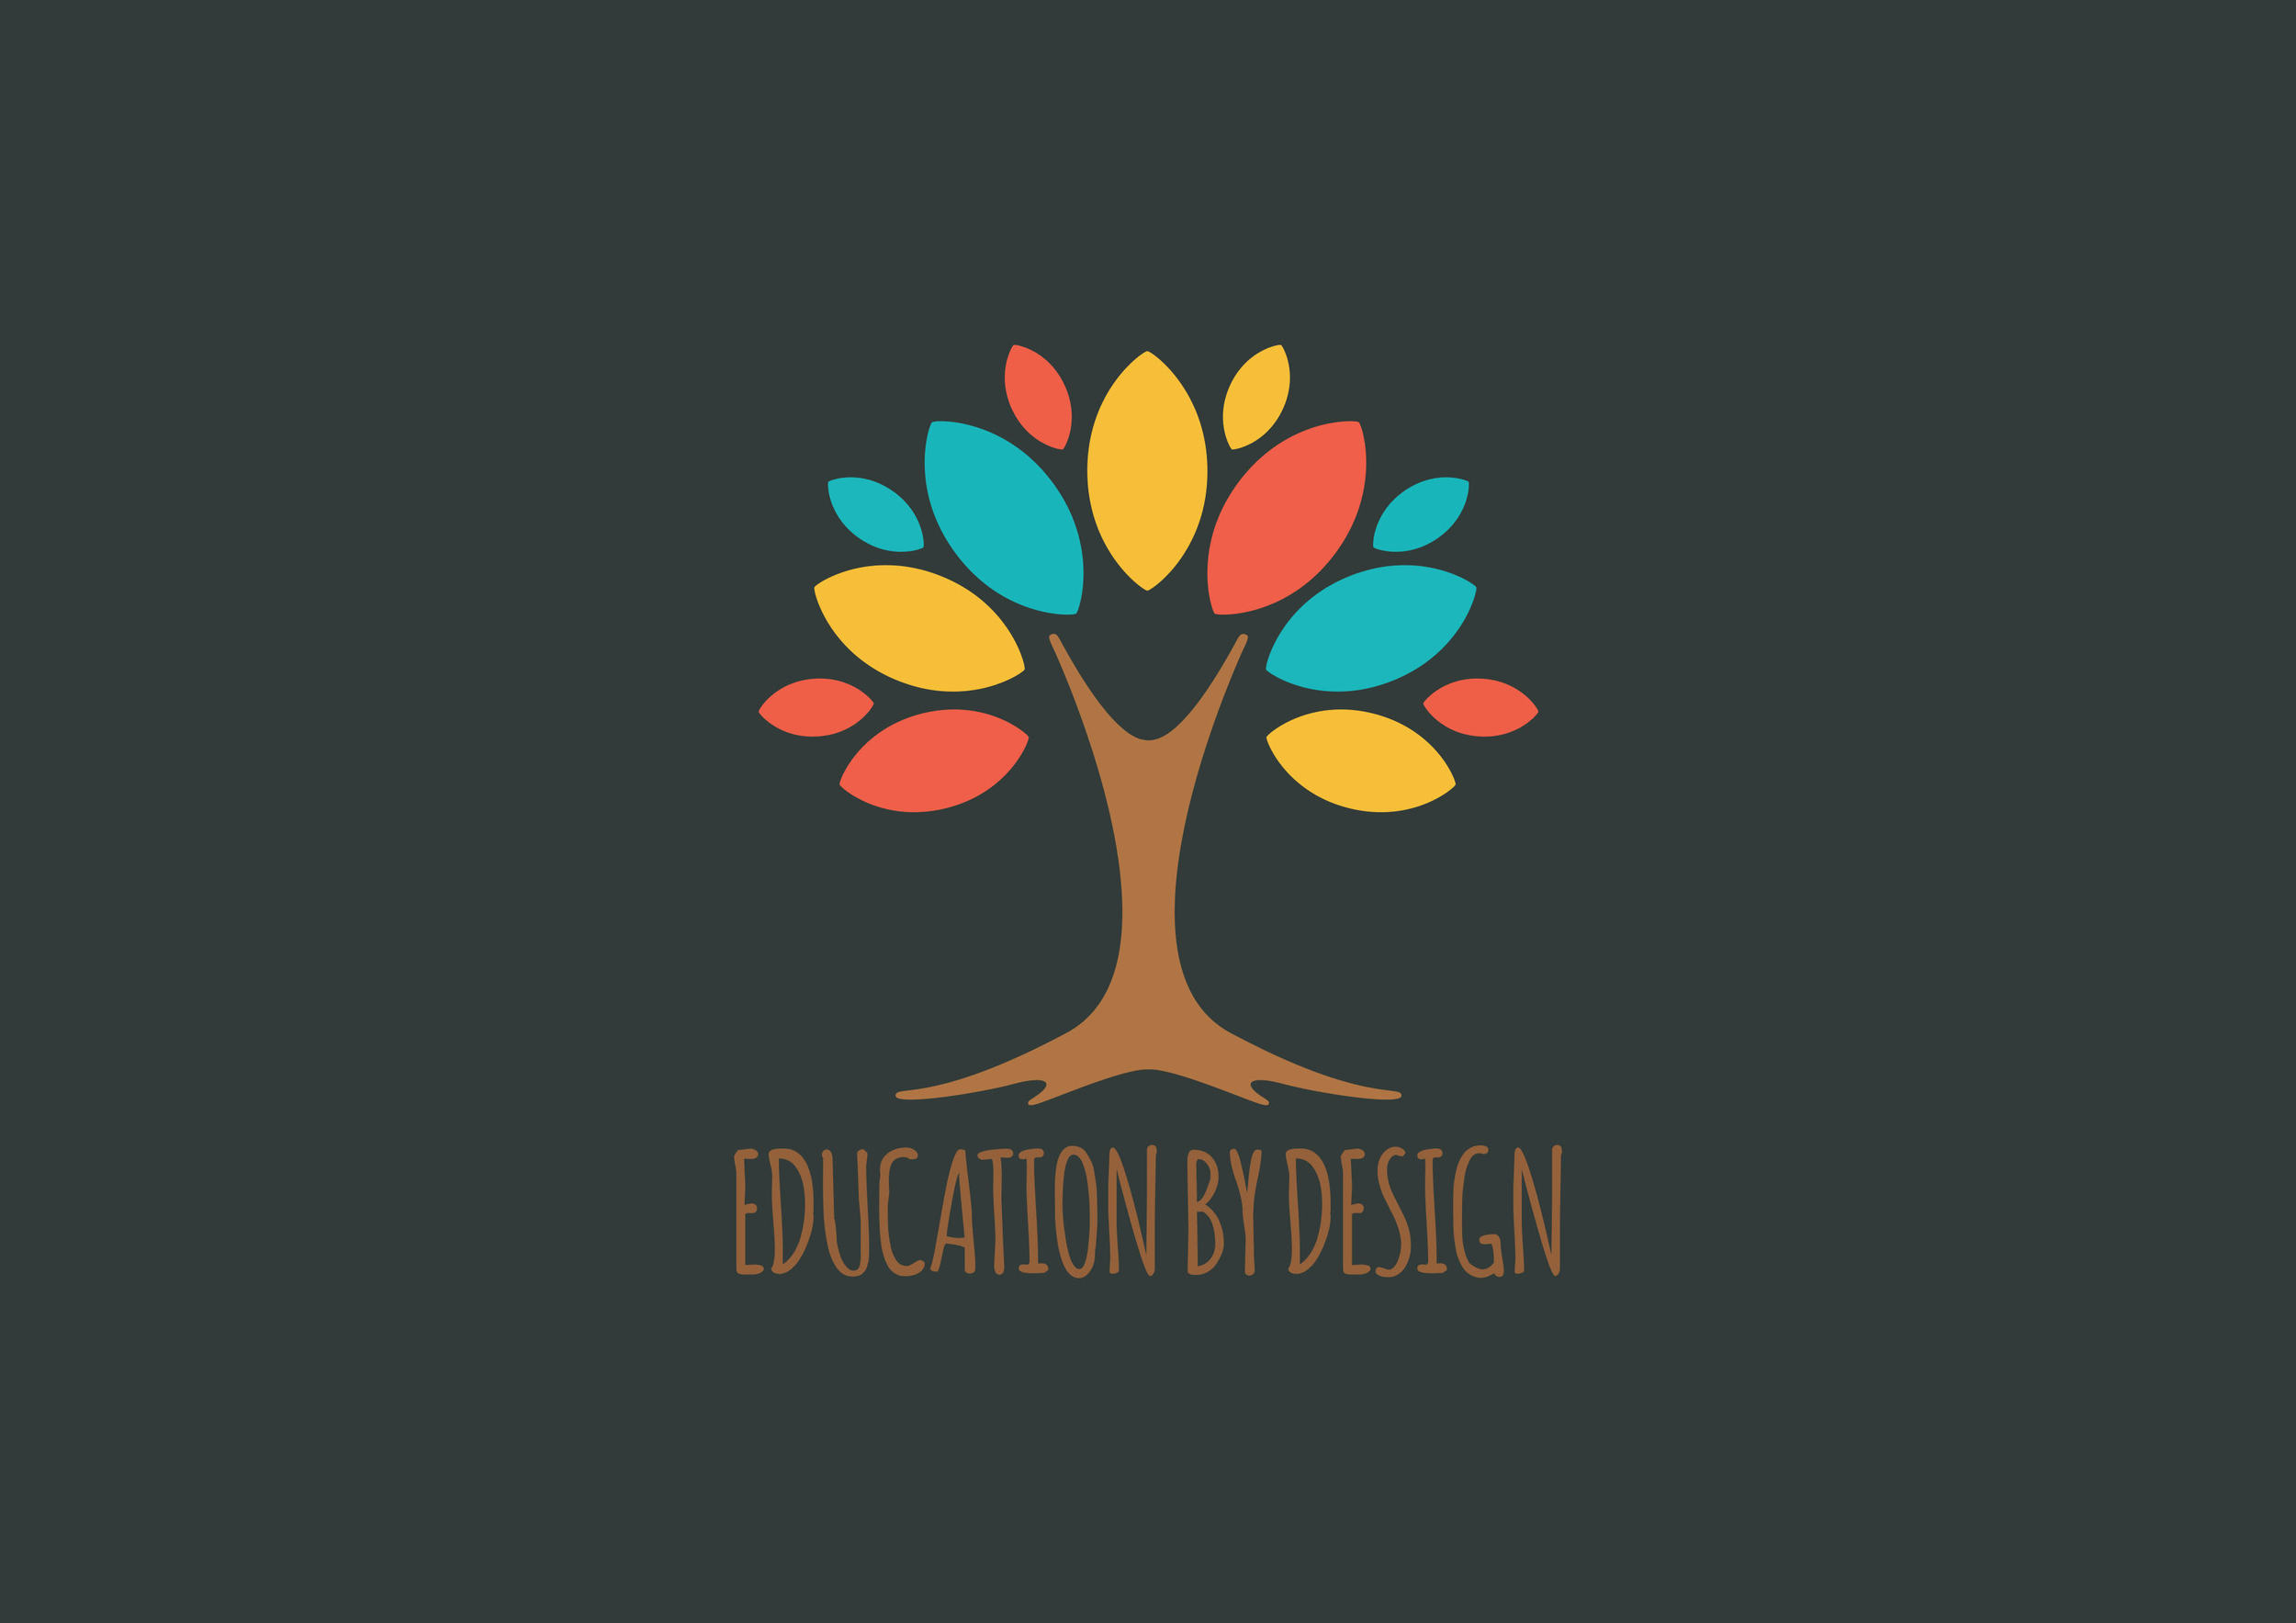 Education by Design : International educators helping colleges, seminaries, and informal training programs develop faculty, curriculum, and strategy. Click graphic to learn more